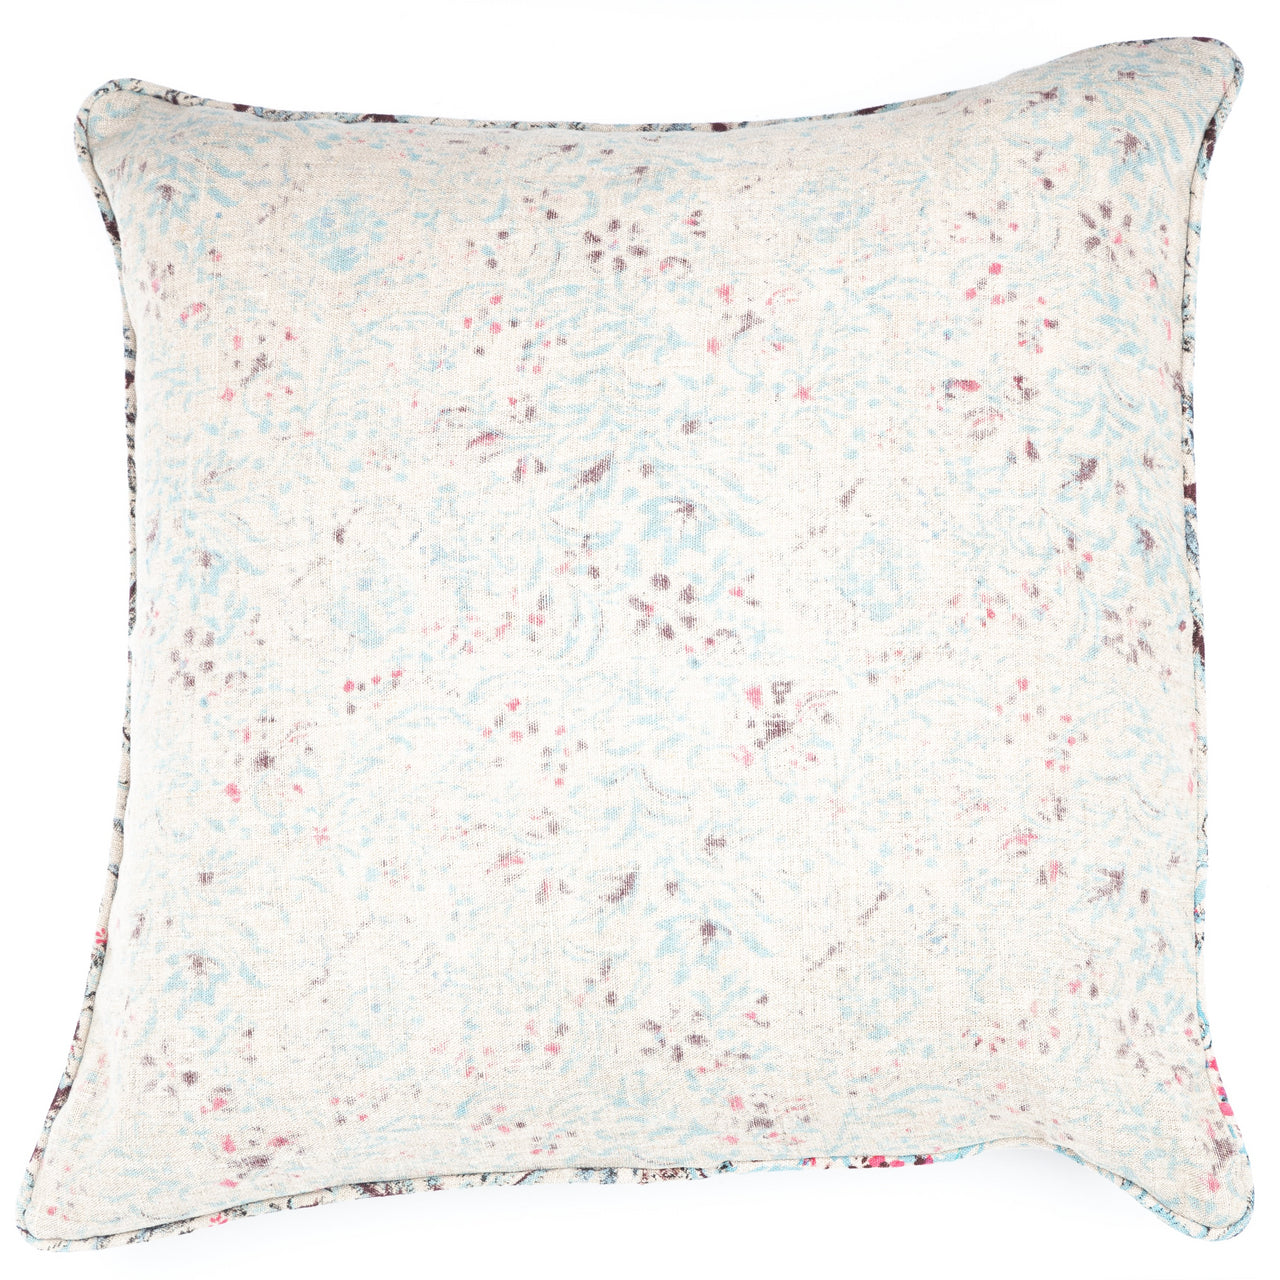 REVERSE AMIRA CUSHION